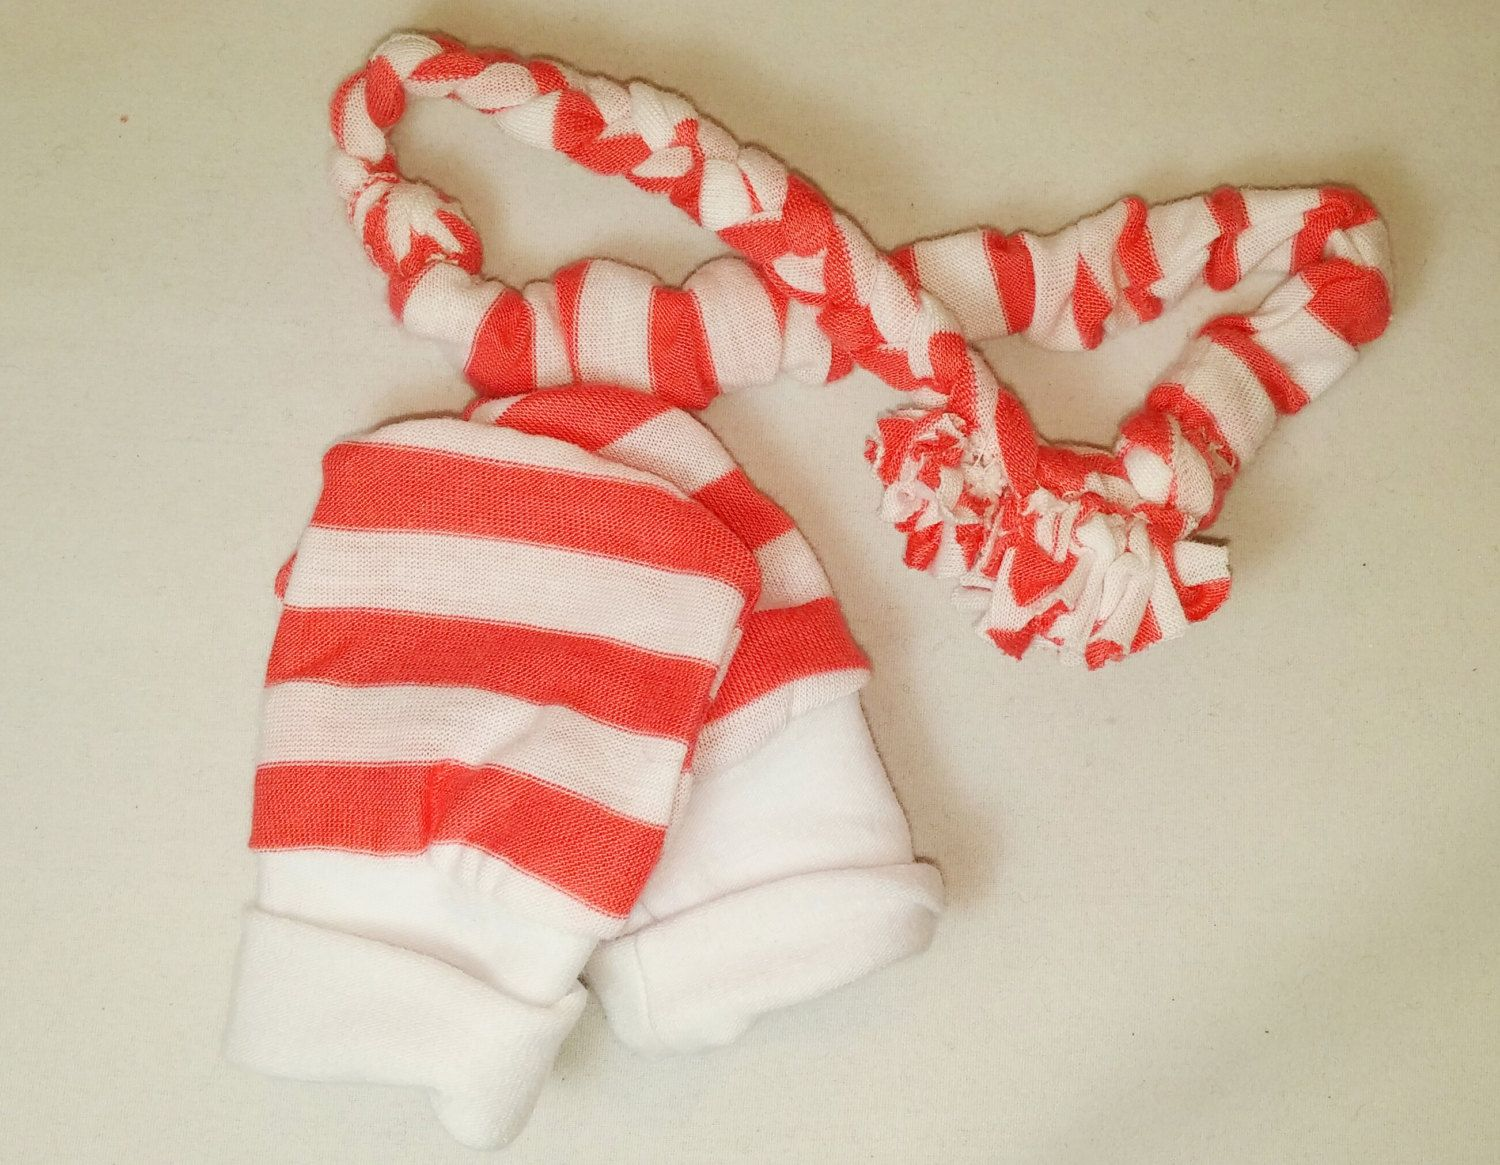 Hand Braided Headband Scratch Mitten Gift Set from MommiesLittleBaby